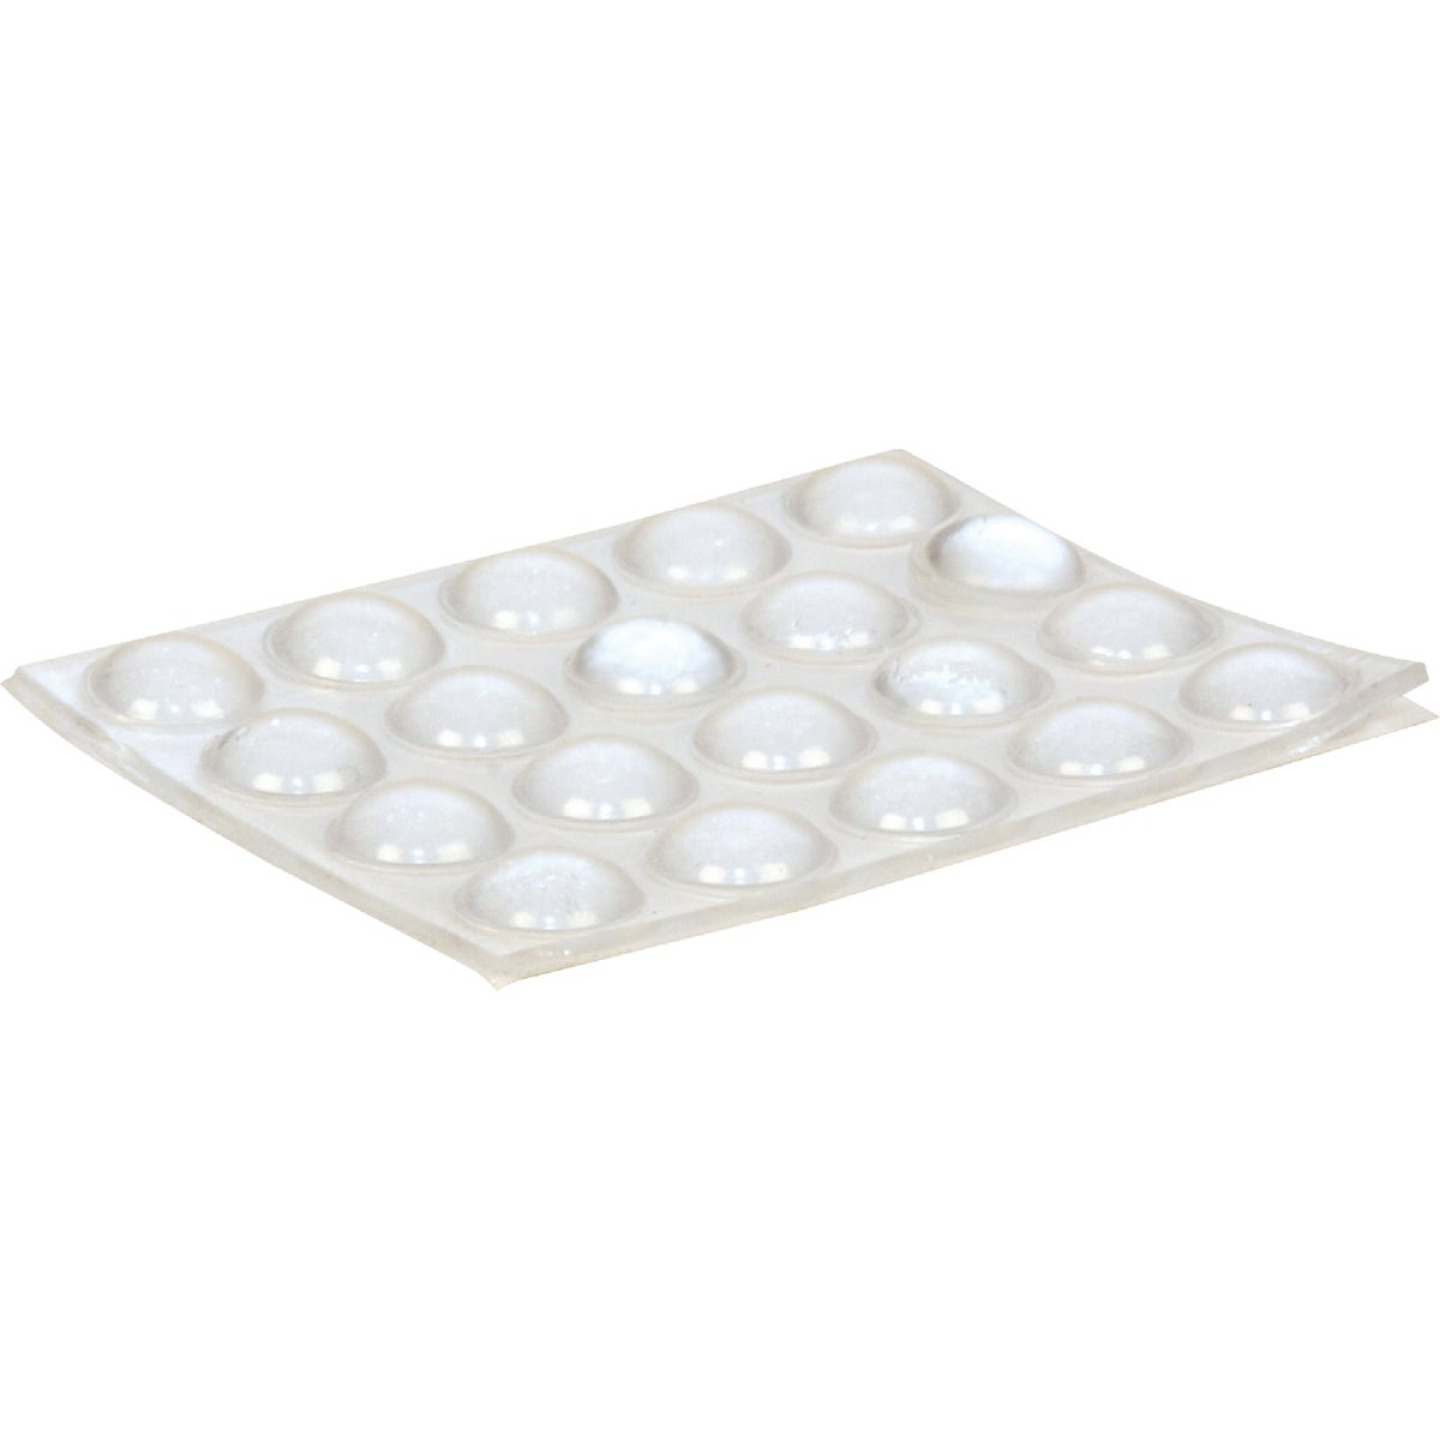 Magic Sliders 3/8 In. Round Clear Furniture Bumpers,(20-Count) Image 1